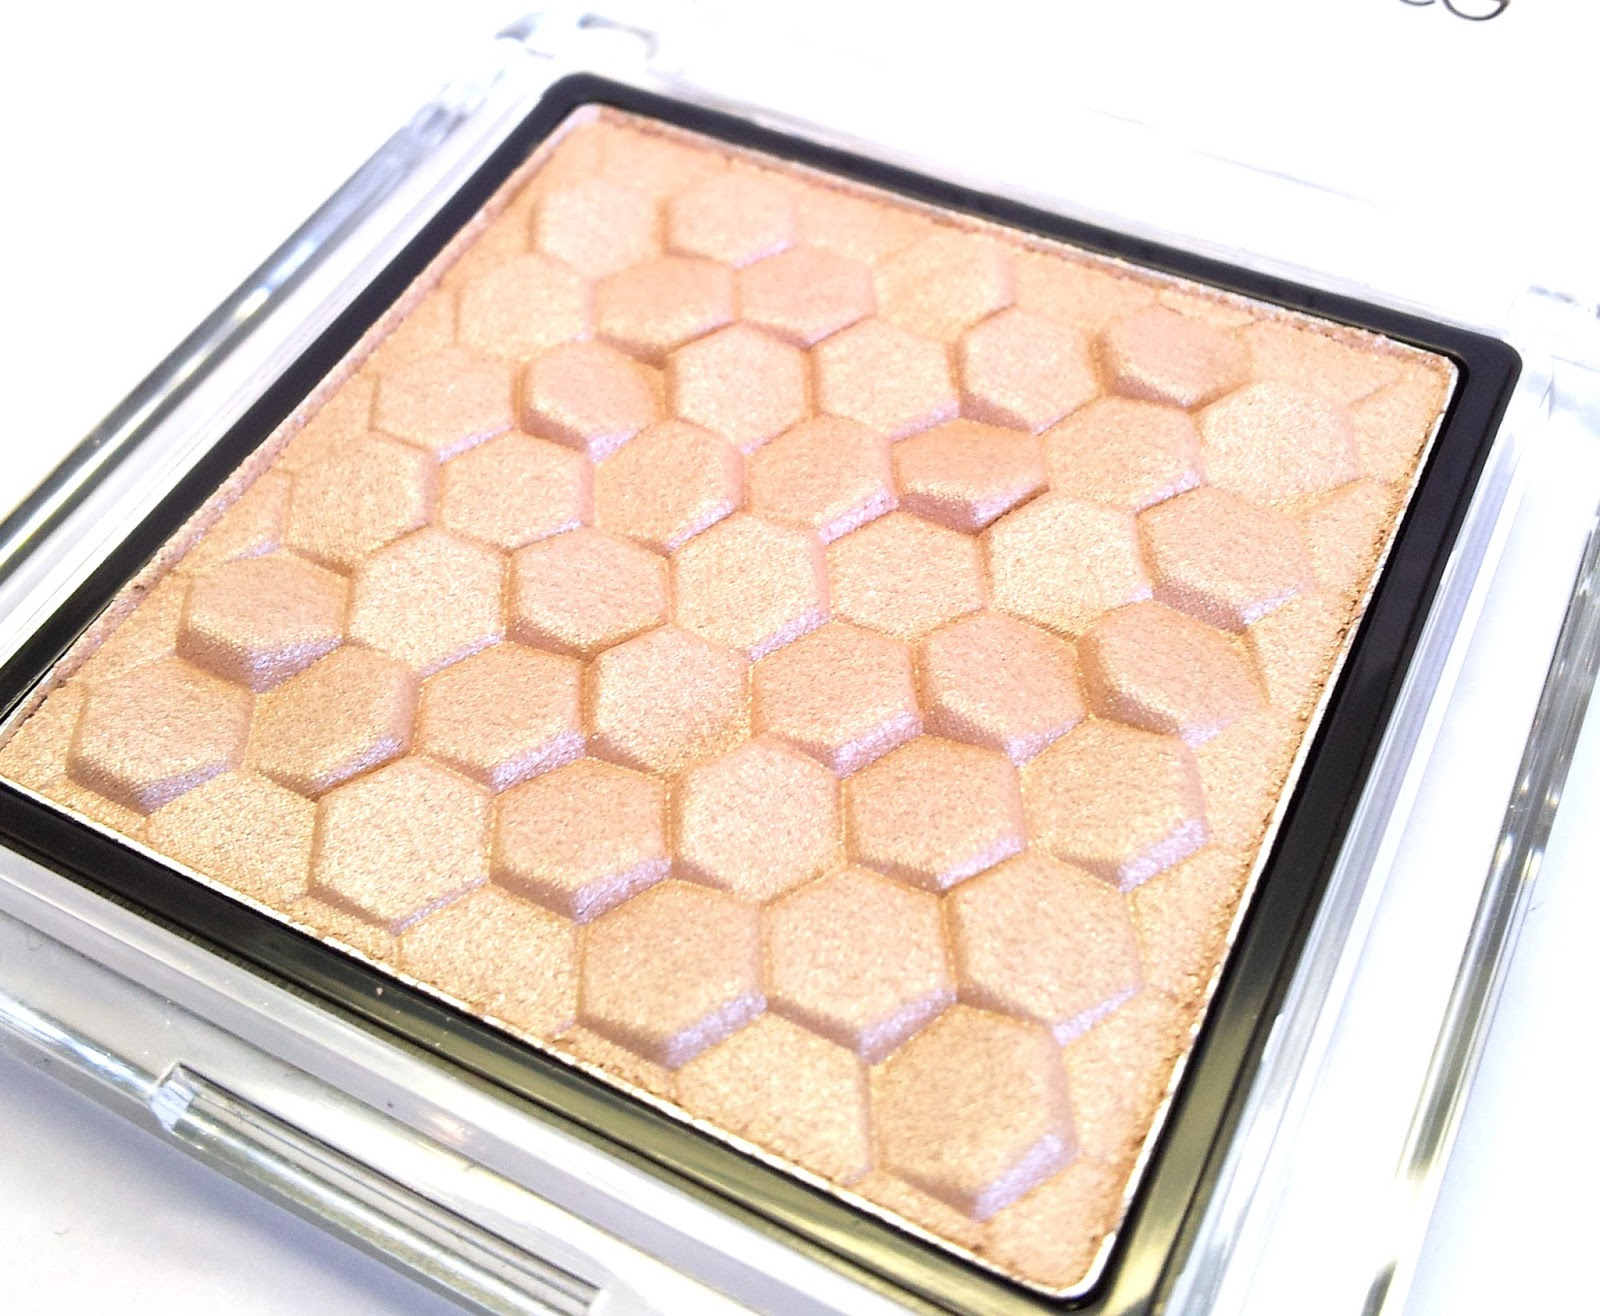 Catrice Nude purism pure shimmer highlighter